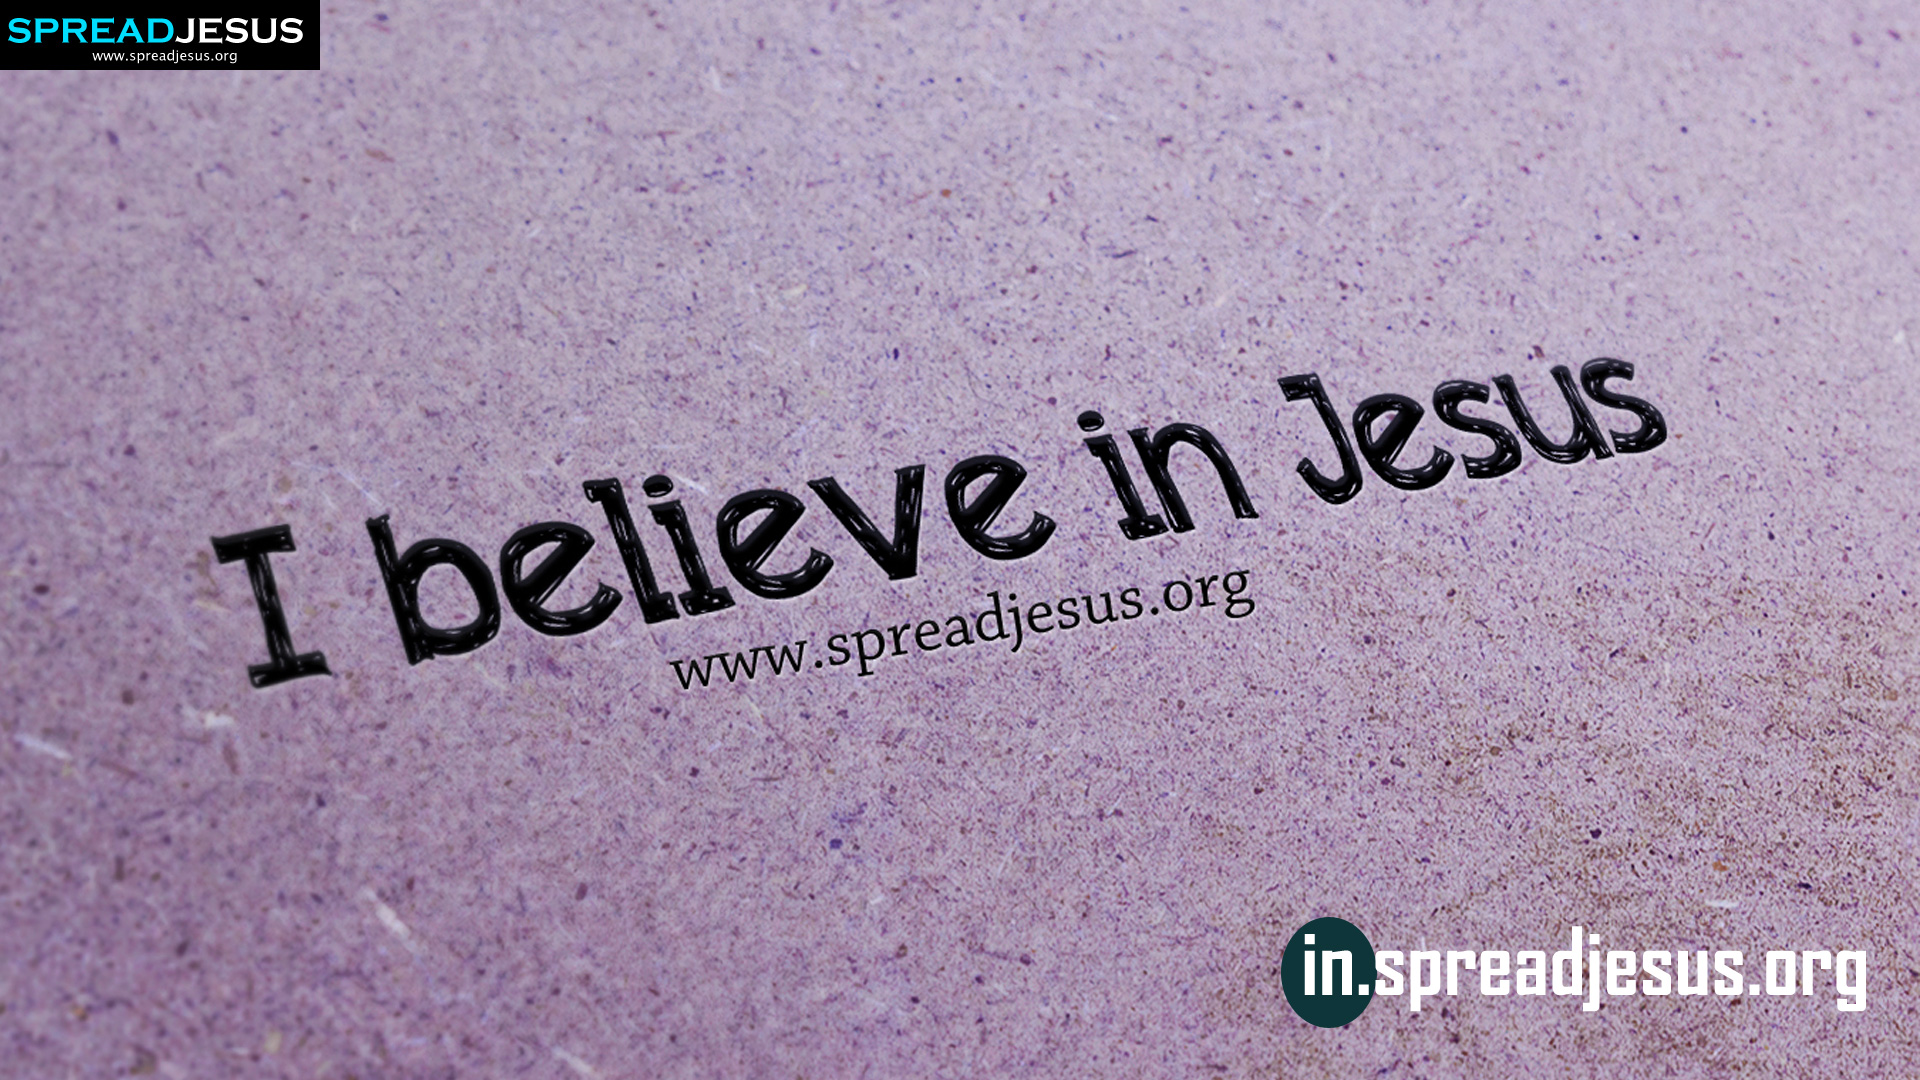 I believe in Jesus -JESUS CHRIST HD-wallpapers I believe in Jesus Free HD-wallpapers Download-spreadjesus.org